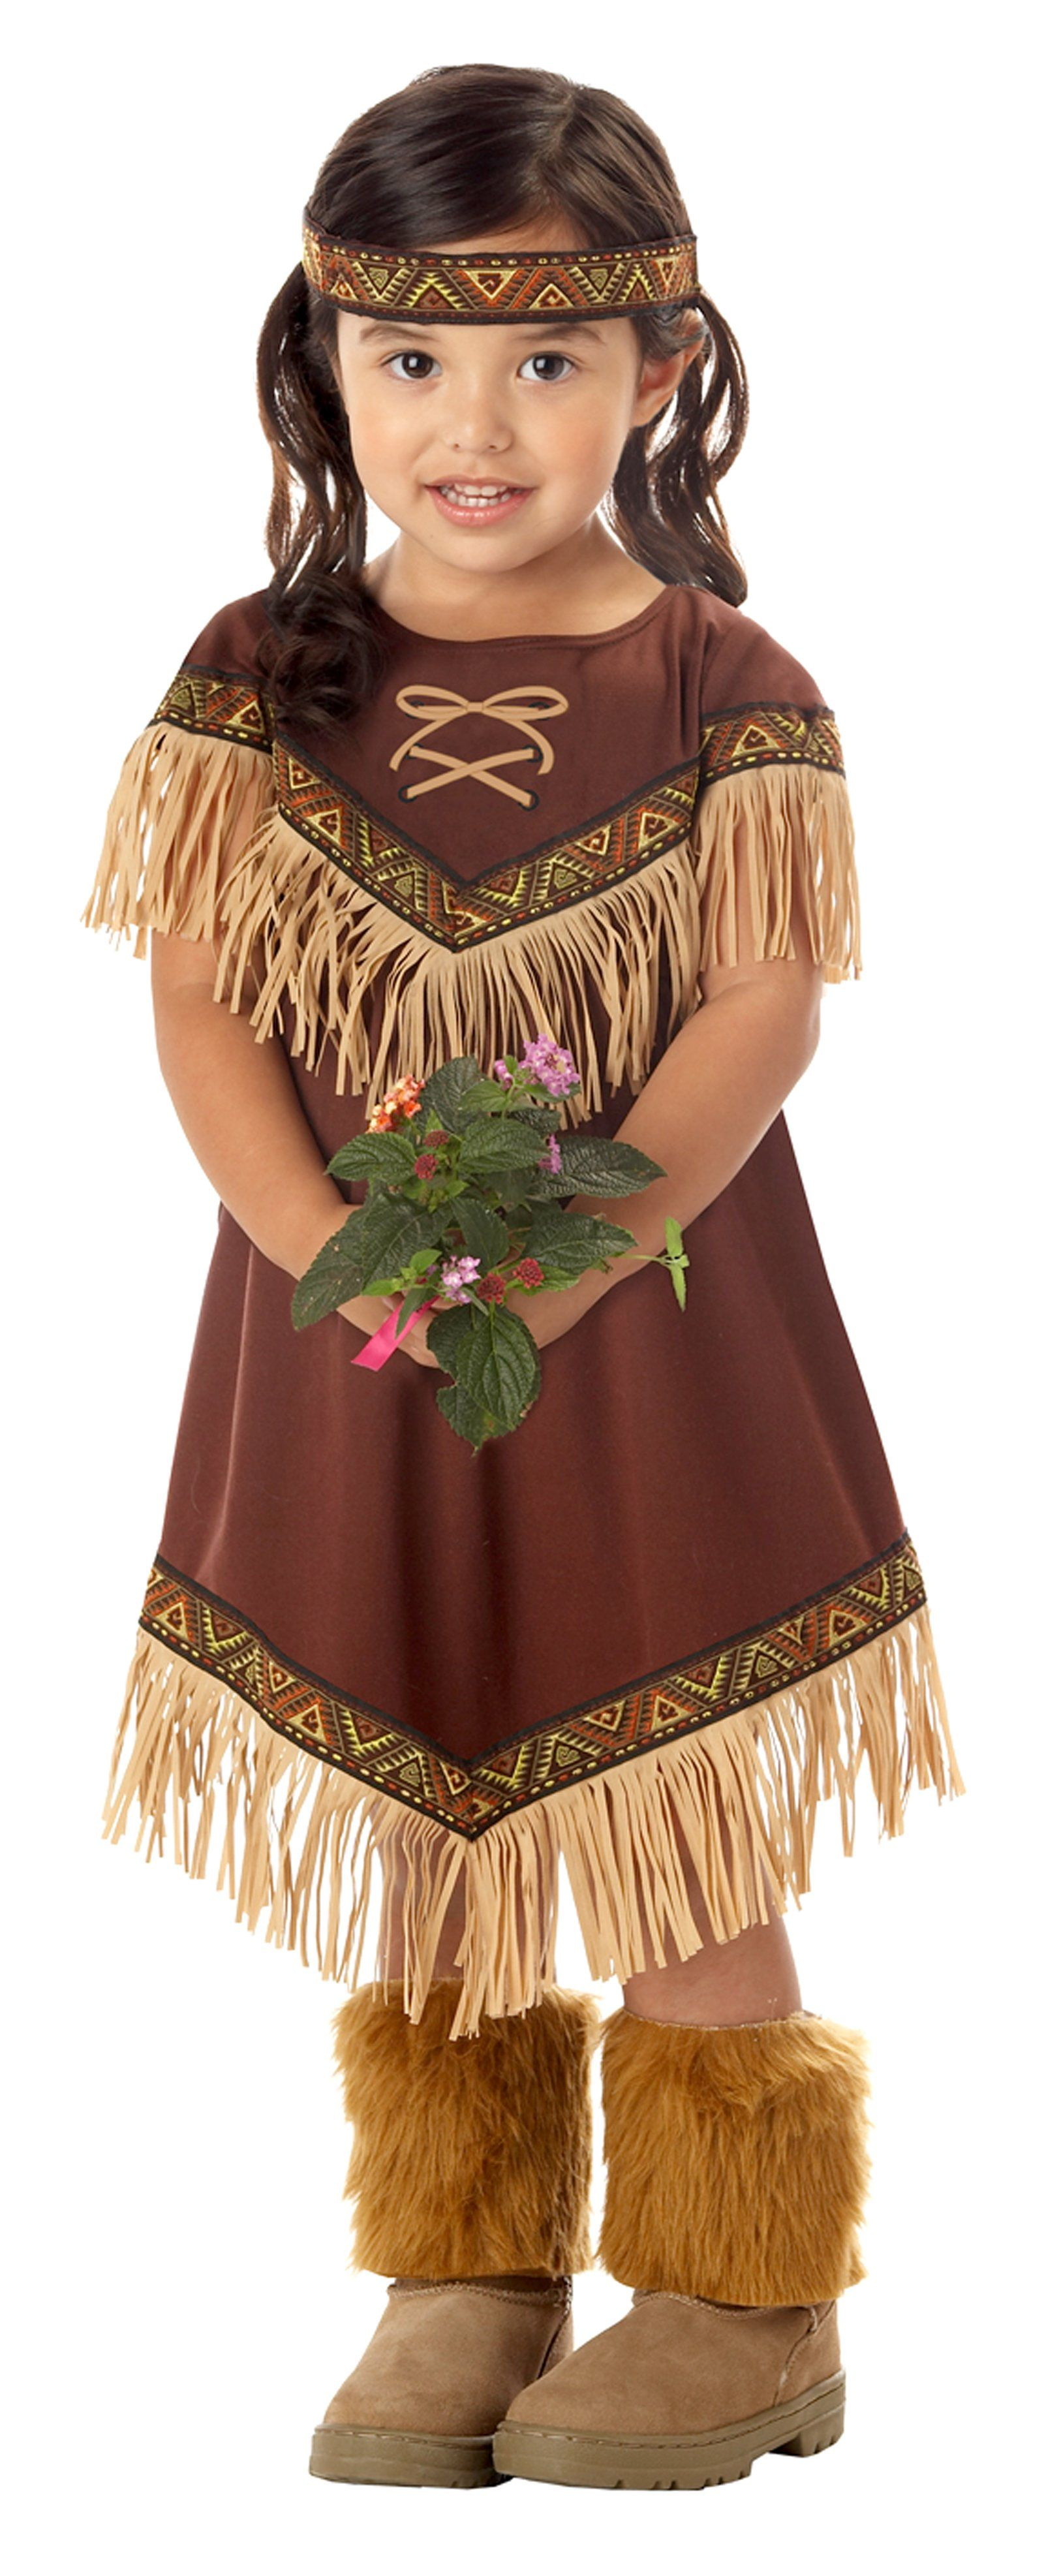 1edccc6866796 Lil' Indian Princess Toddler / Child Costume | Indian princess ...